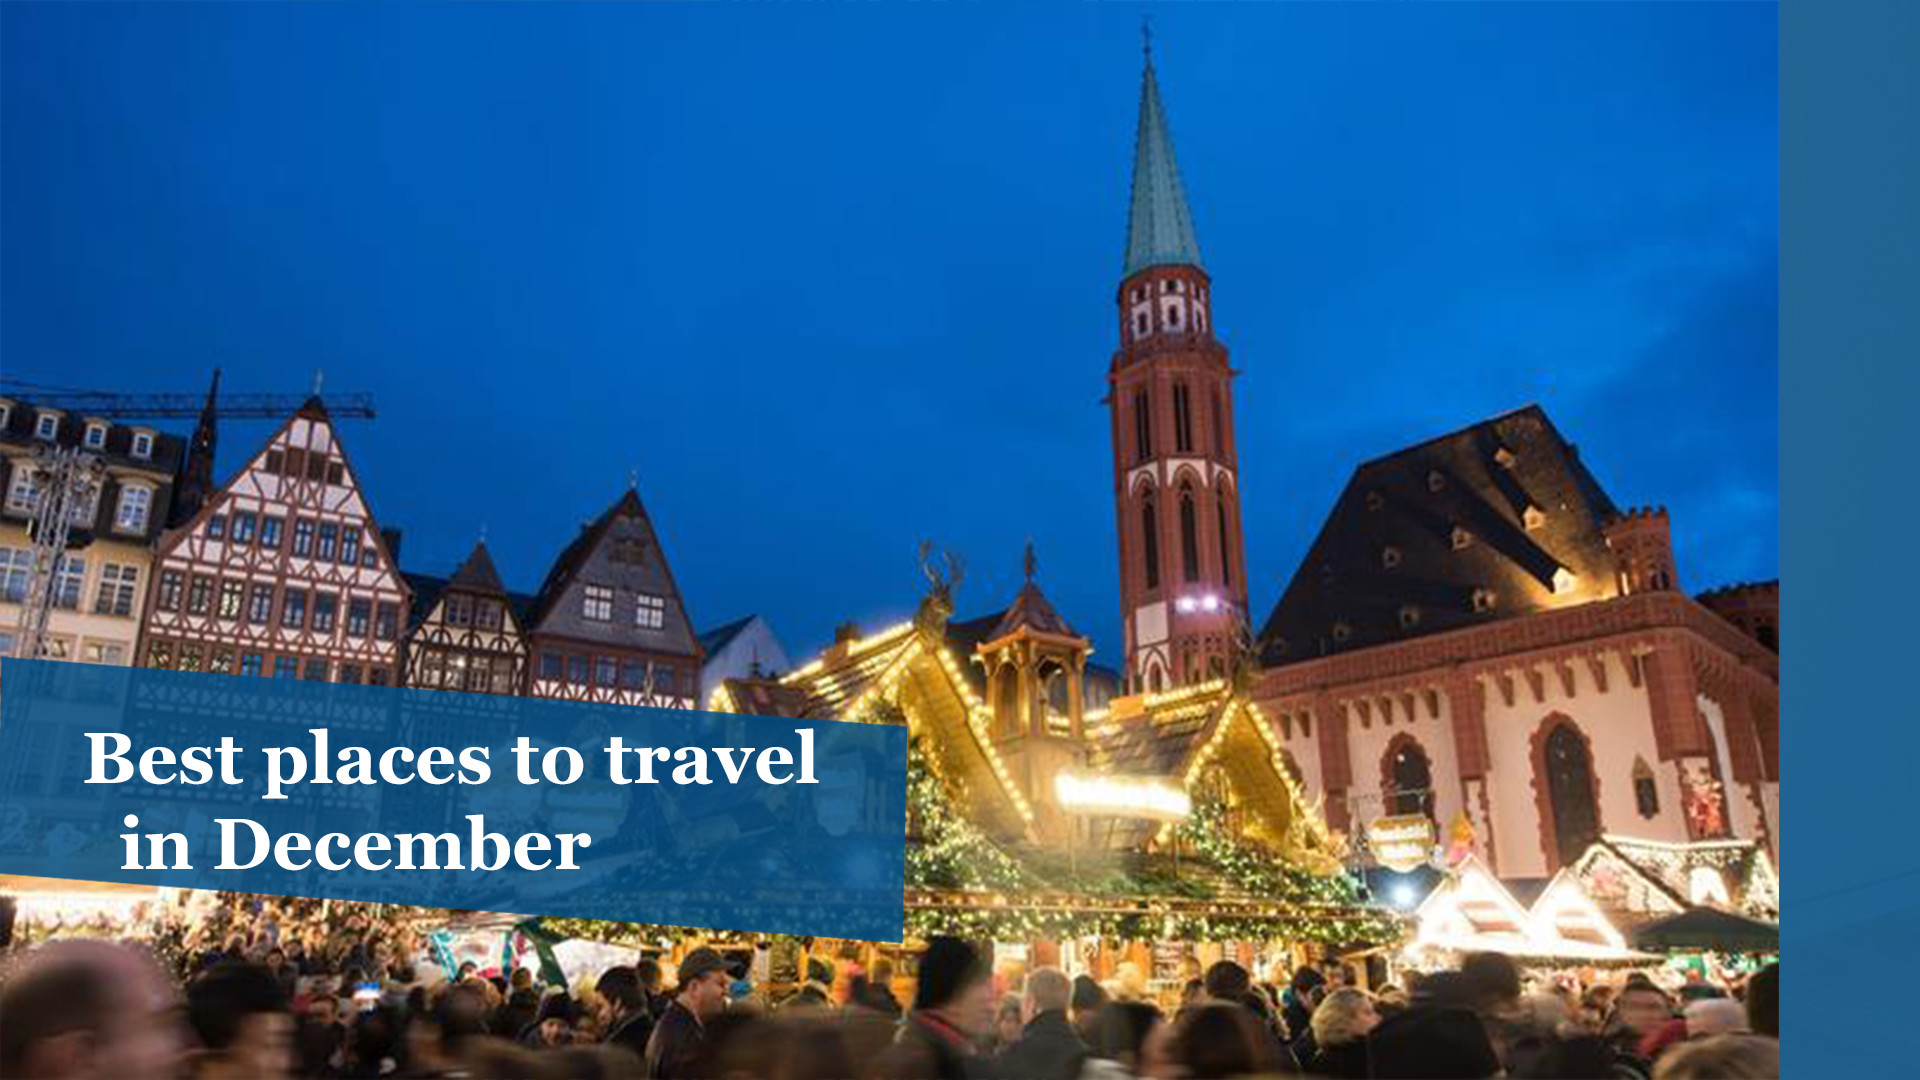 best places to travel in december chicago tribune